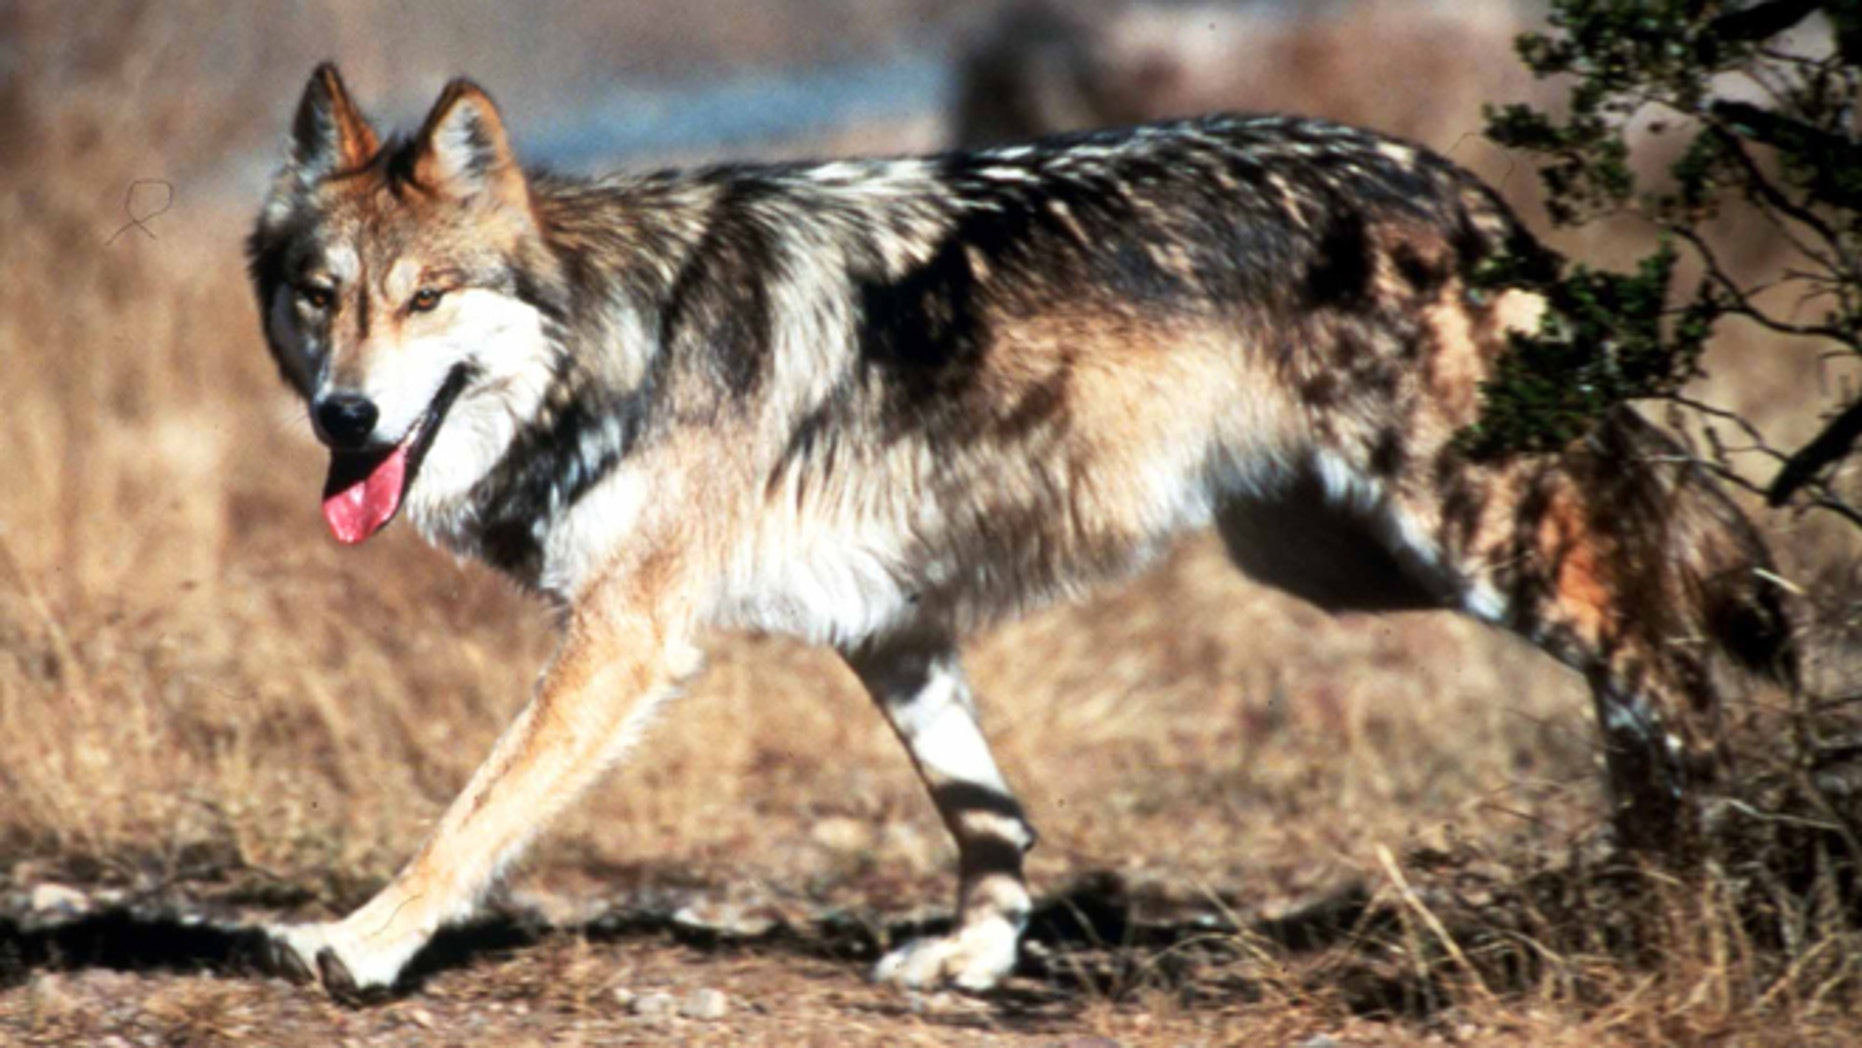 File-This undated file image provided by the U.S. Fish and Wildlife Service shows a Mexican gray wolf leaving cover at the Seviellta National Wildlife Refuge, north of Soccorro, N. M. There are more Mexican gray wolves in the wild in the New Mexico and Arizona than last year. The results of the U.S. Fish and Wildlife Service's annual survey were released Friday Jan. 31, 2014. There are at least 83 of the endangered predators in the two states, marking the fourth year in a row the population has increased. (AP Photo/U.S. Fish and Wildlife Service, Jim Clark, File)